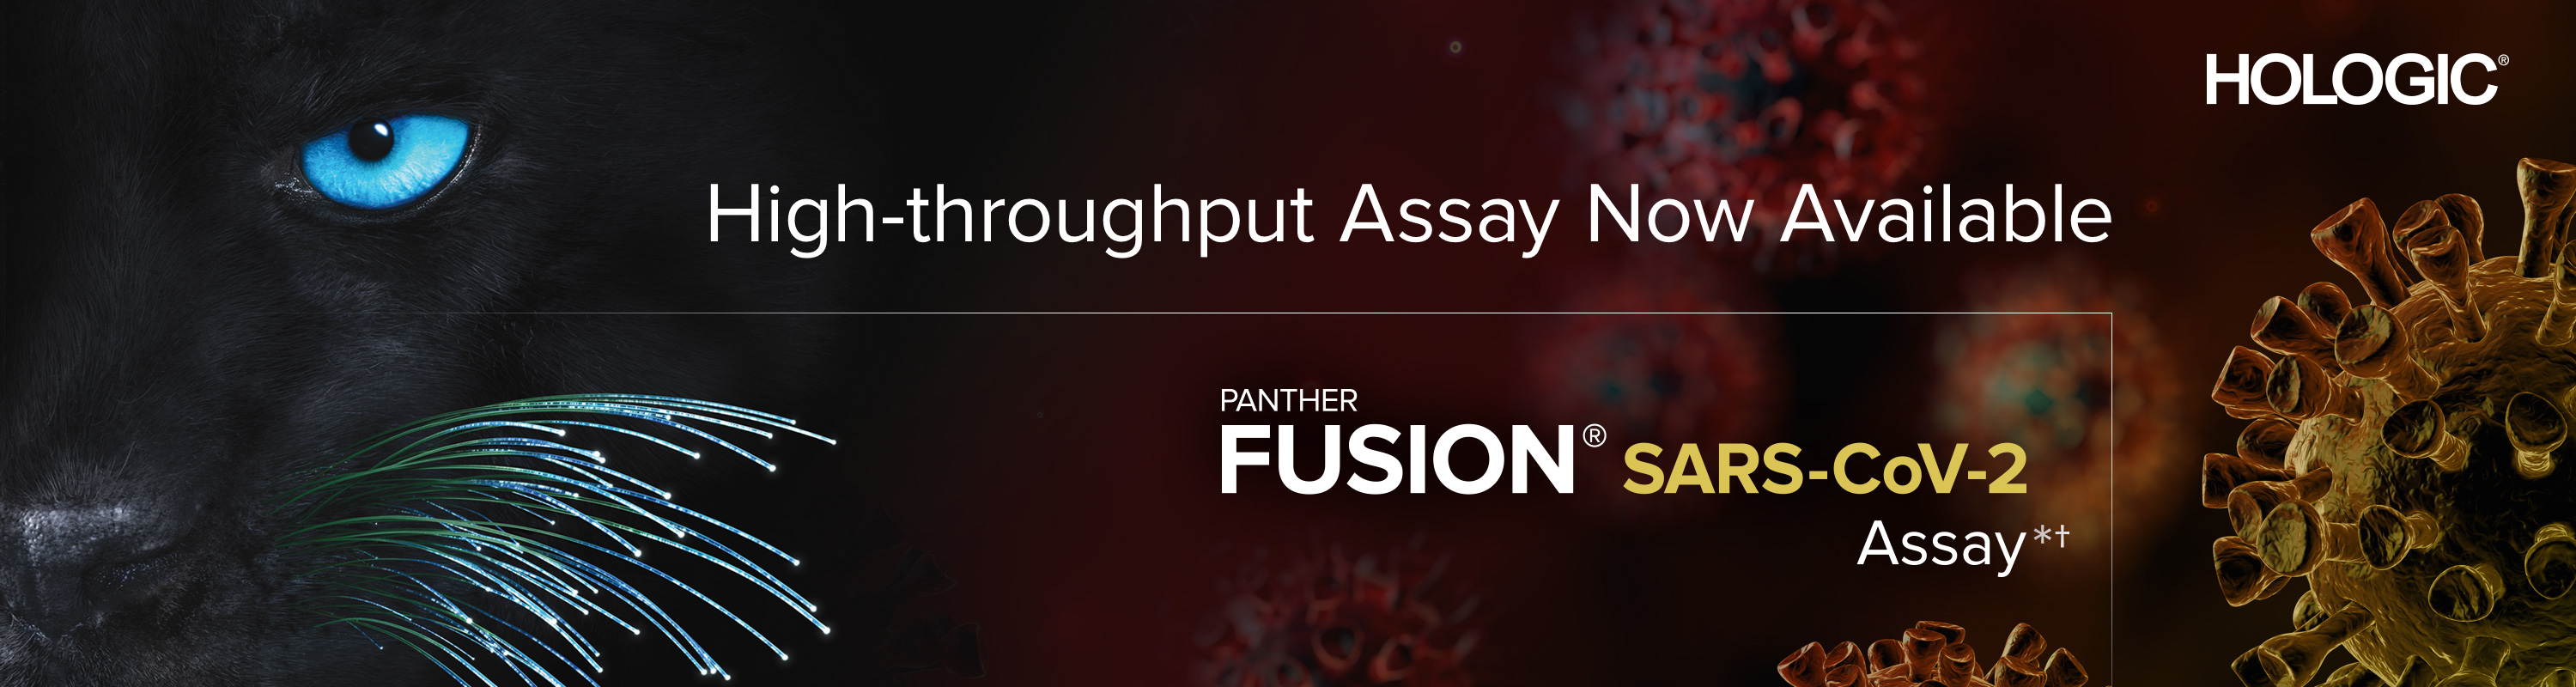 New SARS-CoV-2 assay available for Hologic Panther Fusion